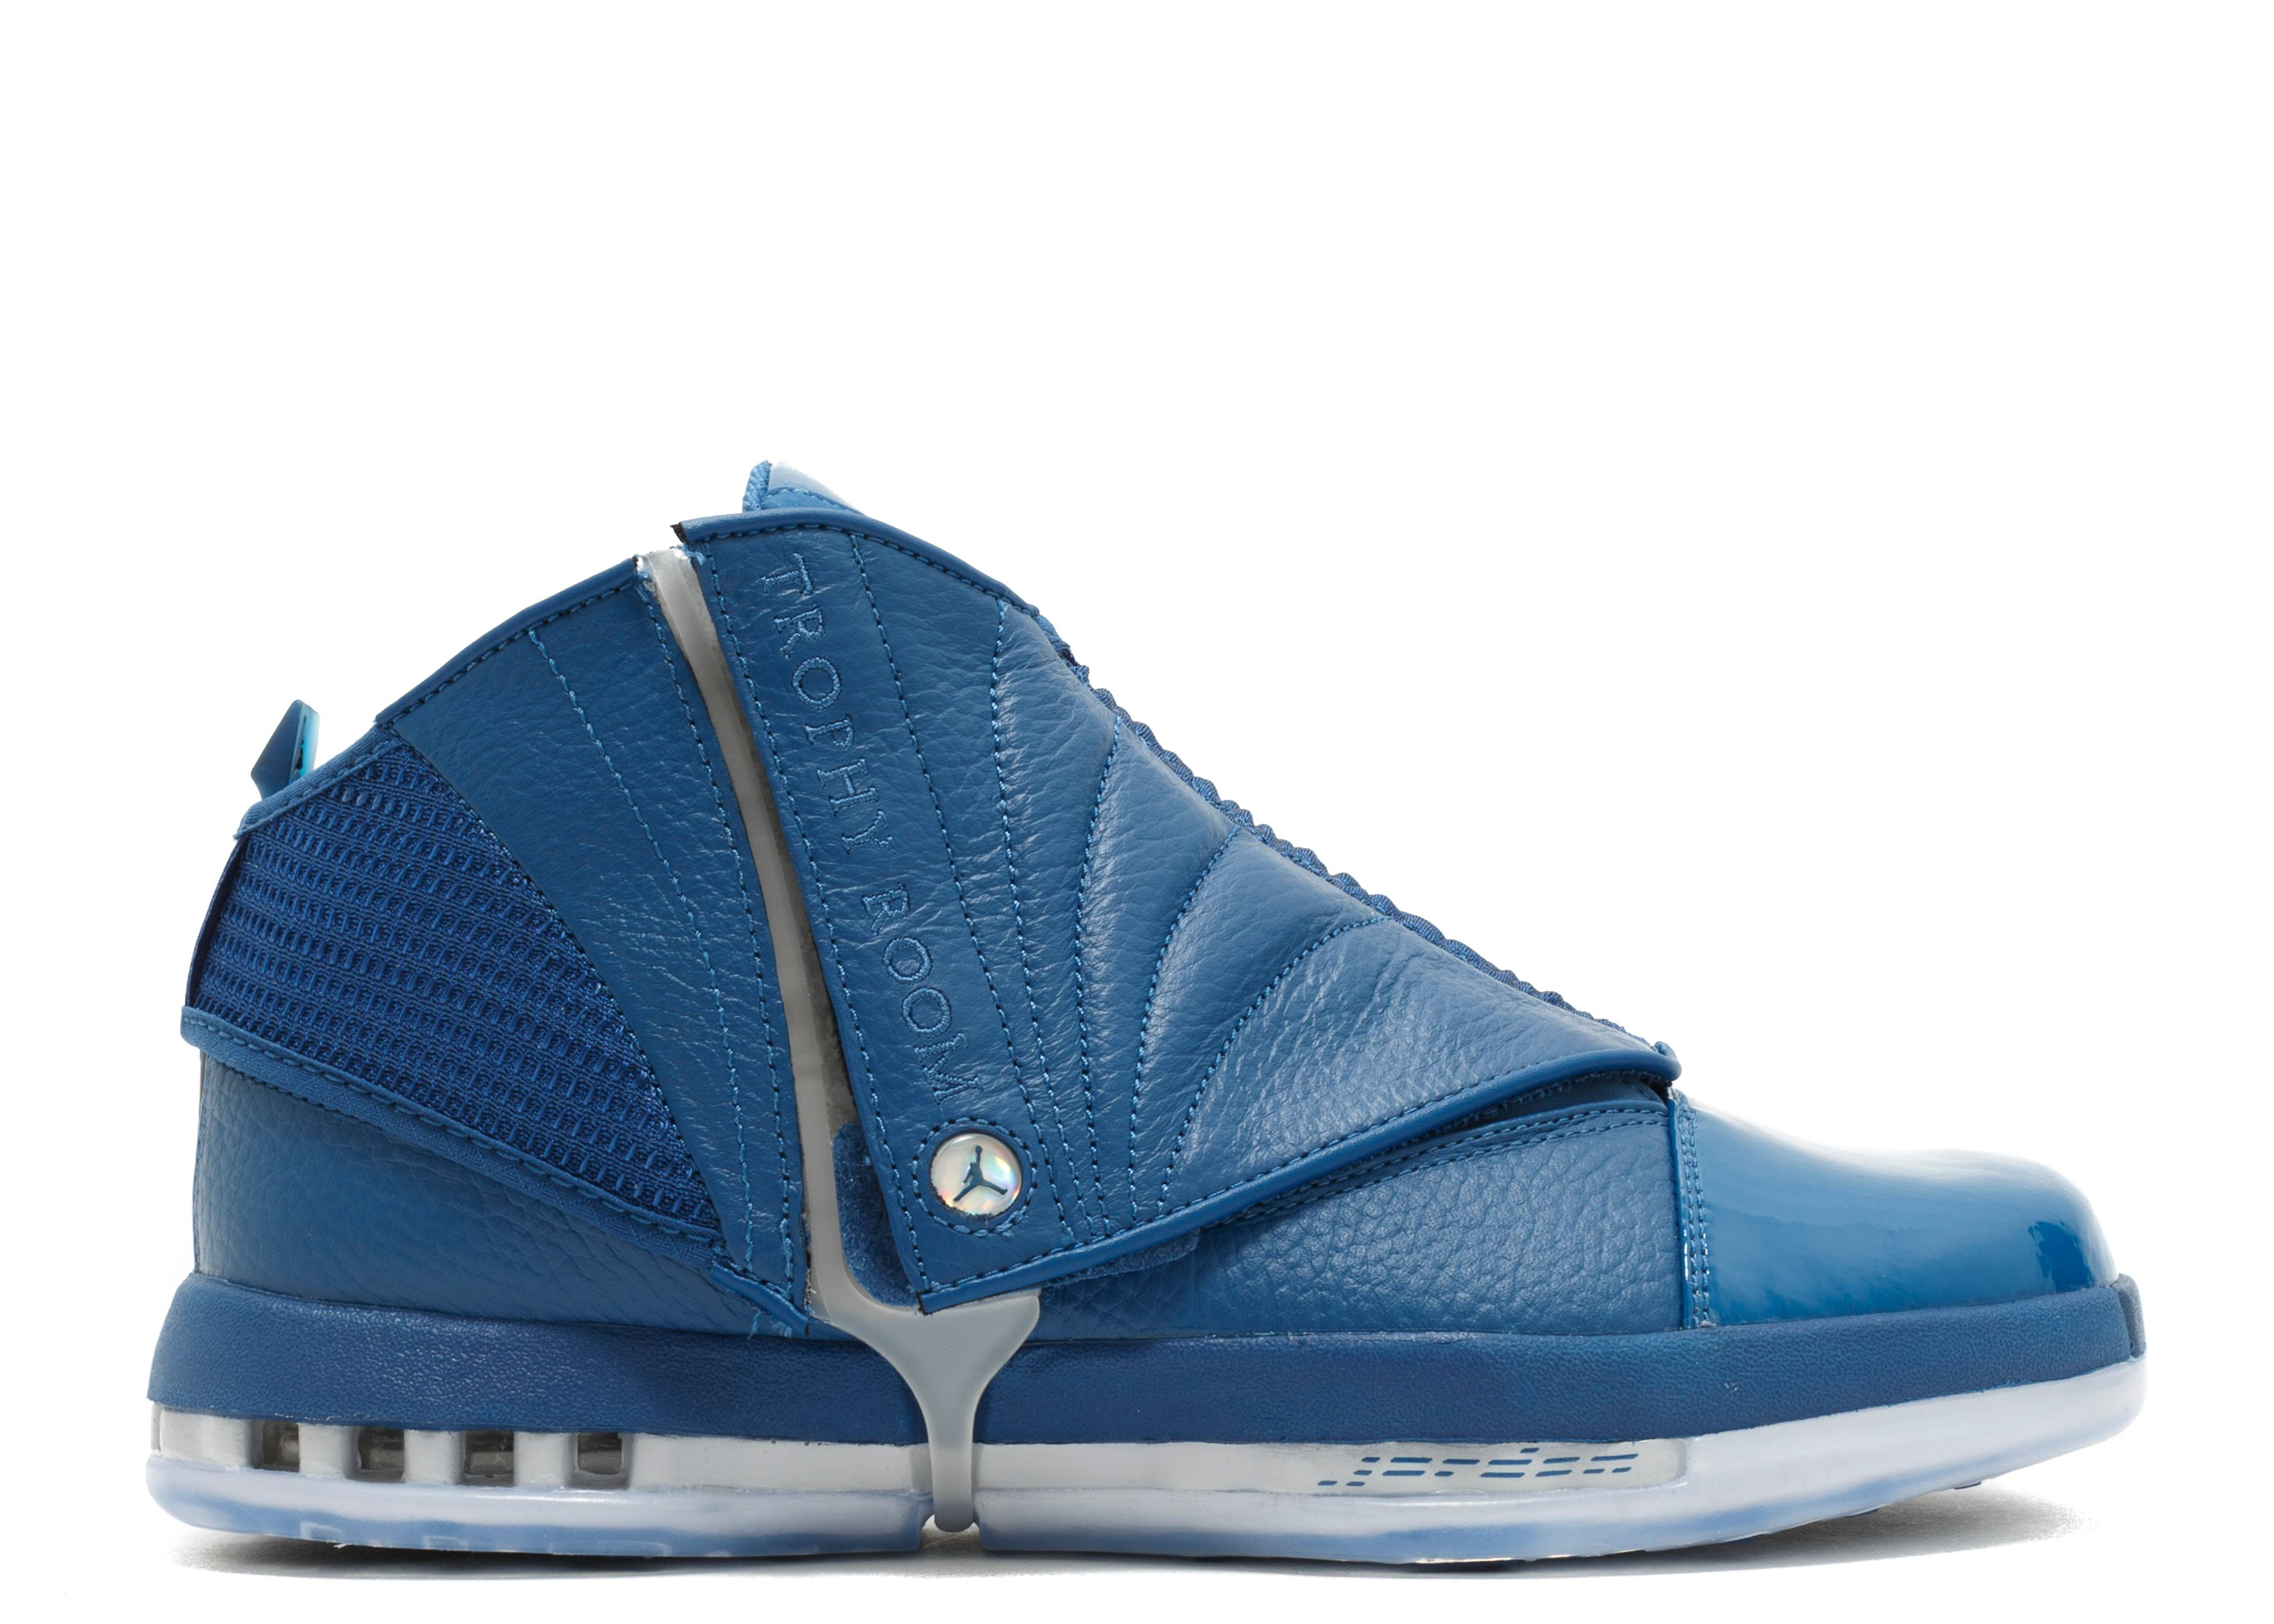 air jordan 16 retro trophy rm